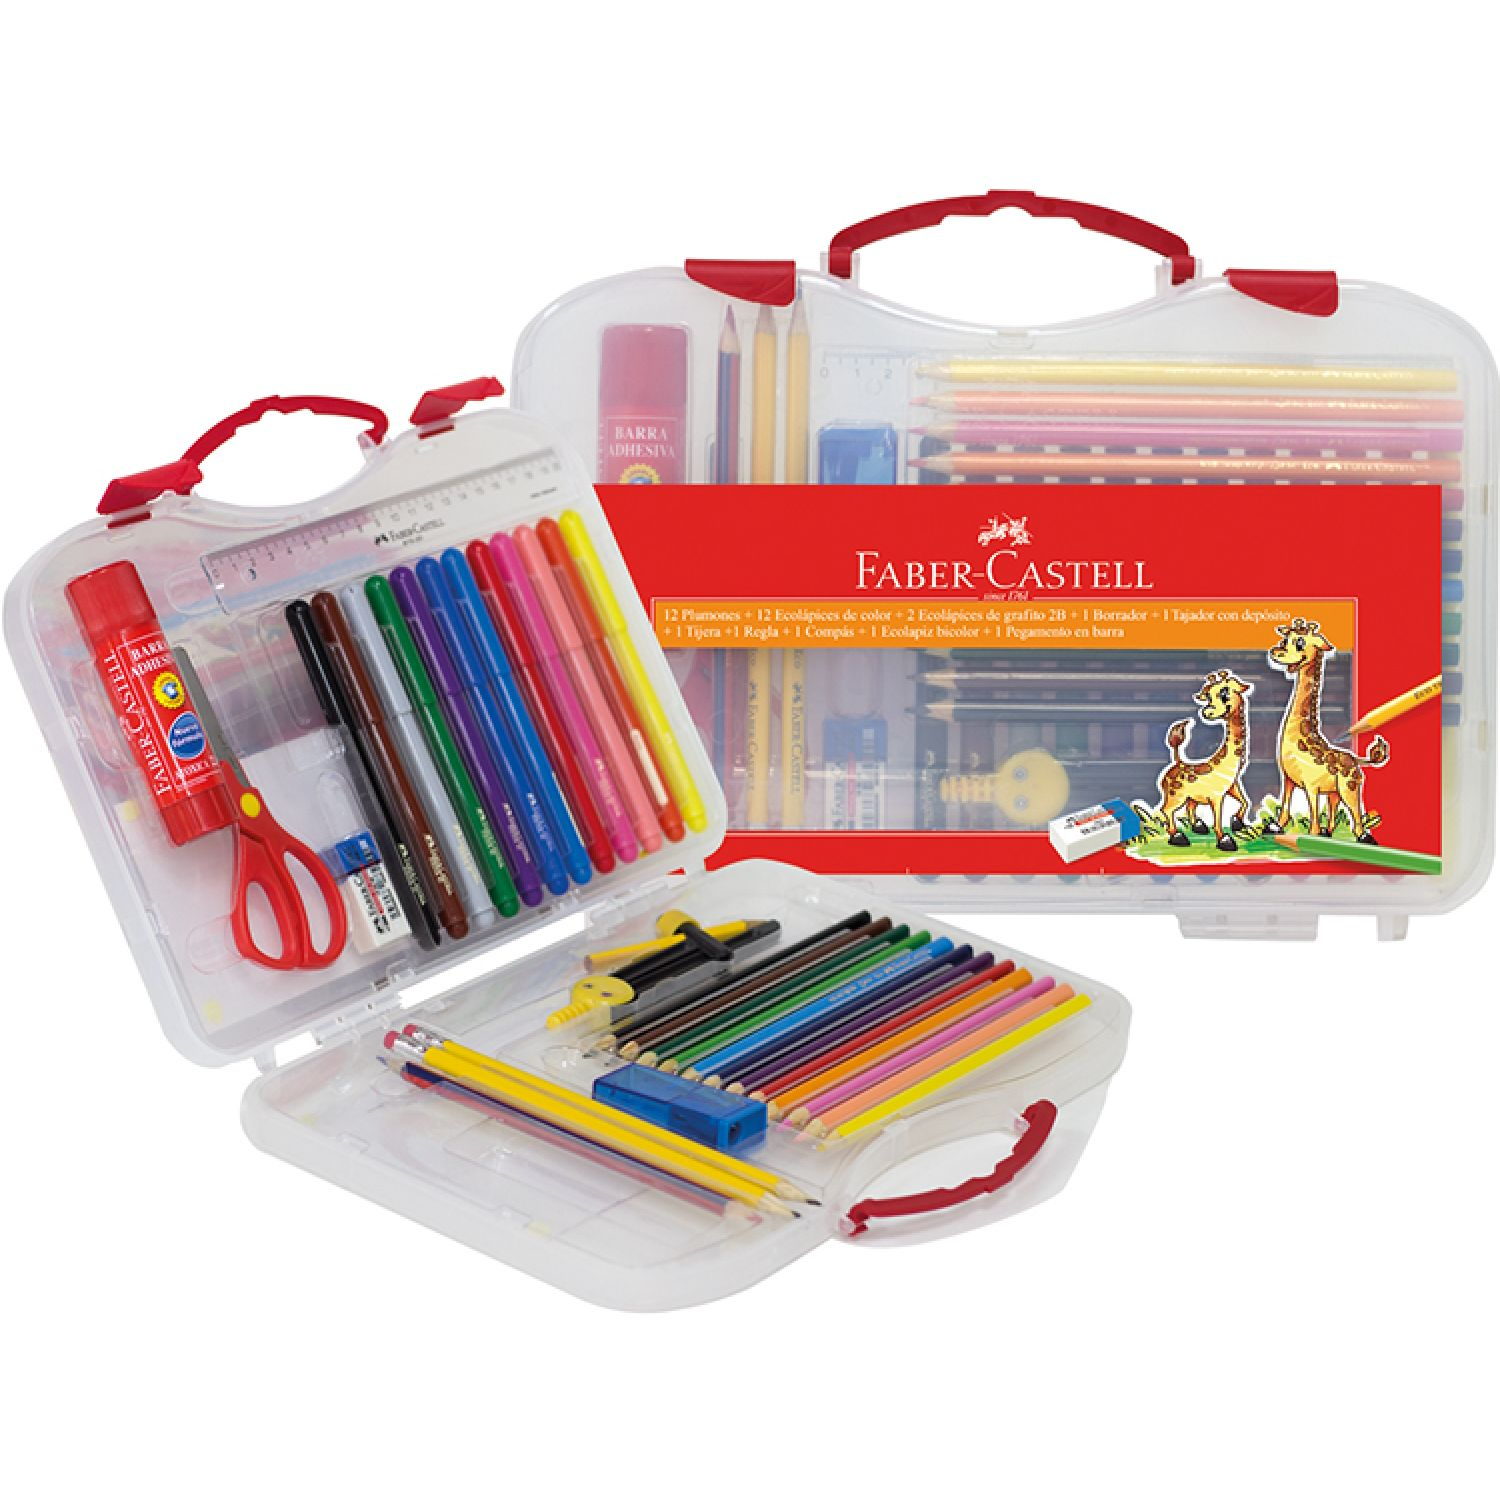 FABER CASTELL Pack Escolar Varios Lápices de color